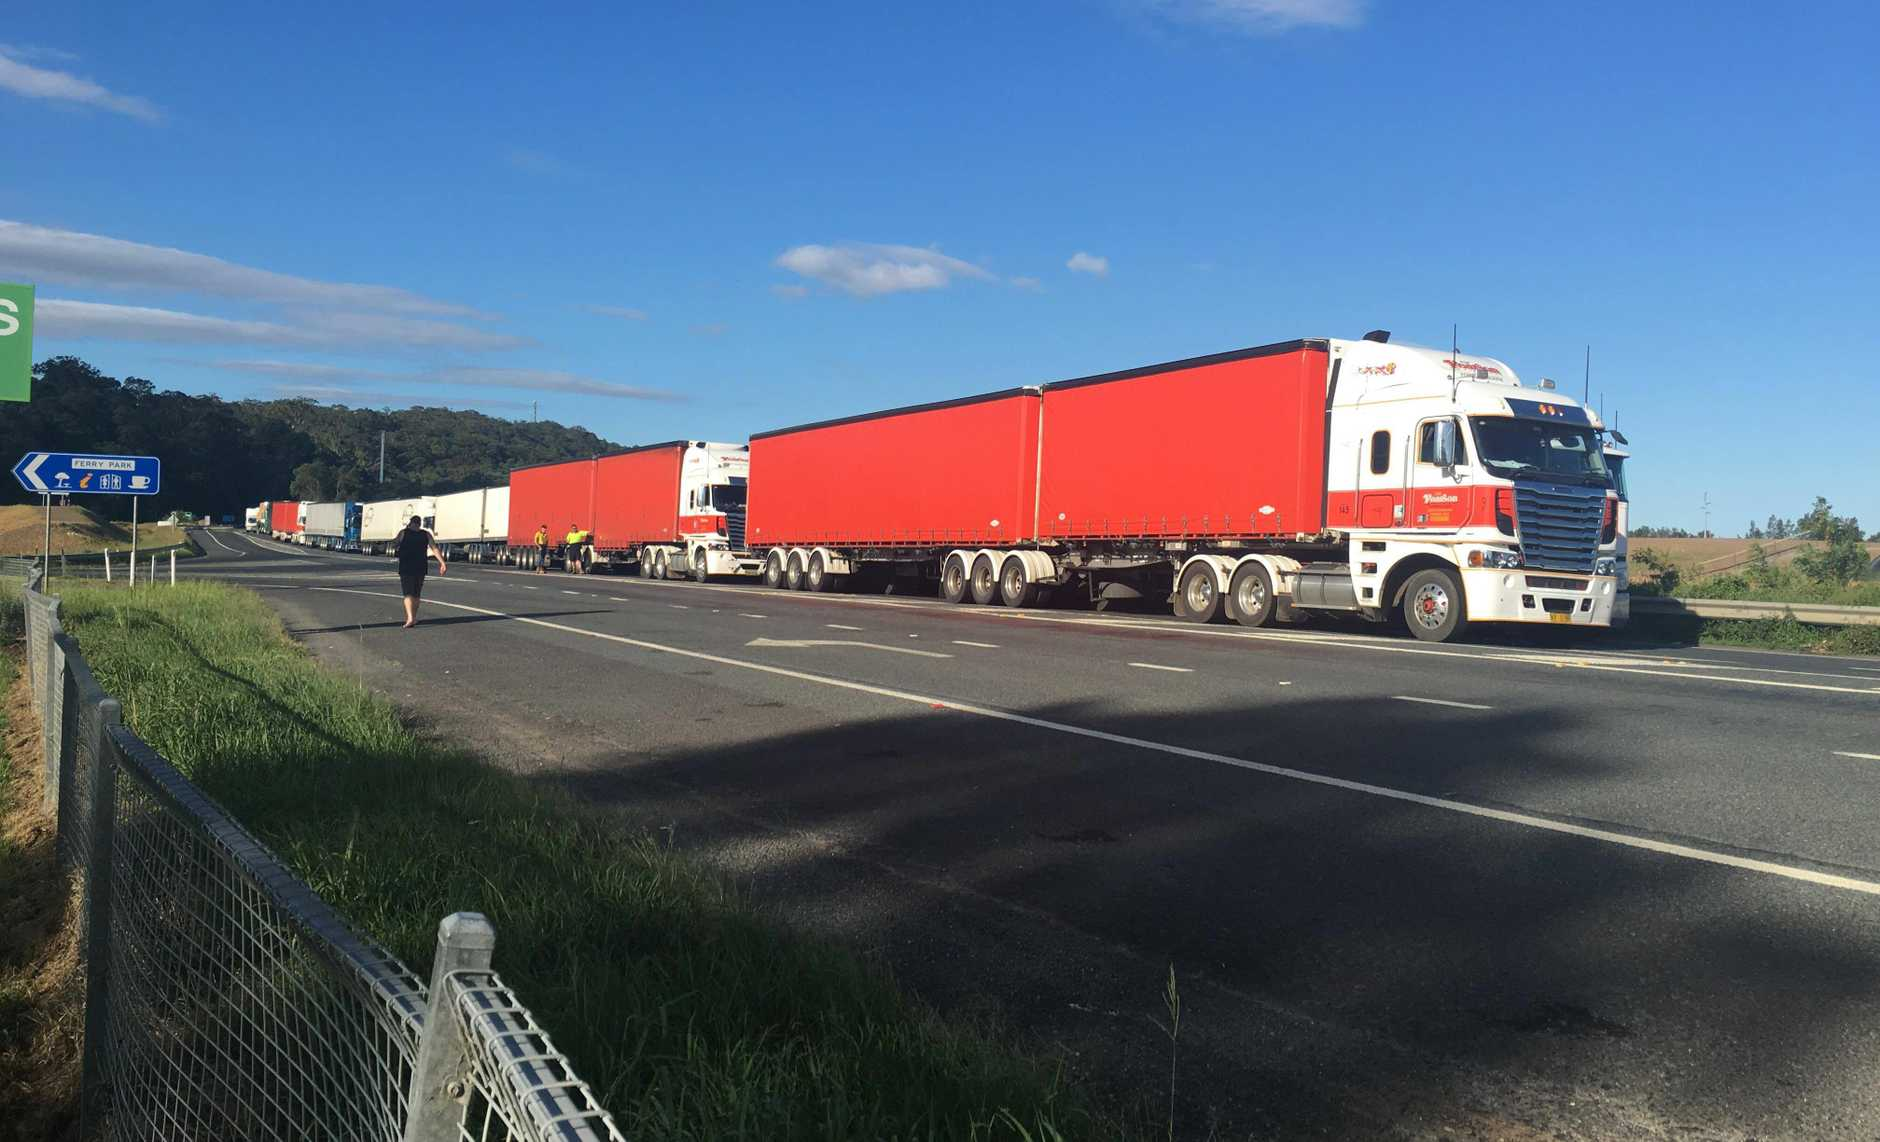 A long line of trucks await the re-opening of the Pacific Highway after the multi-vehicle accident.